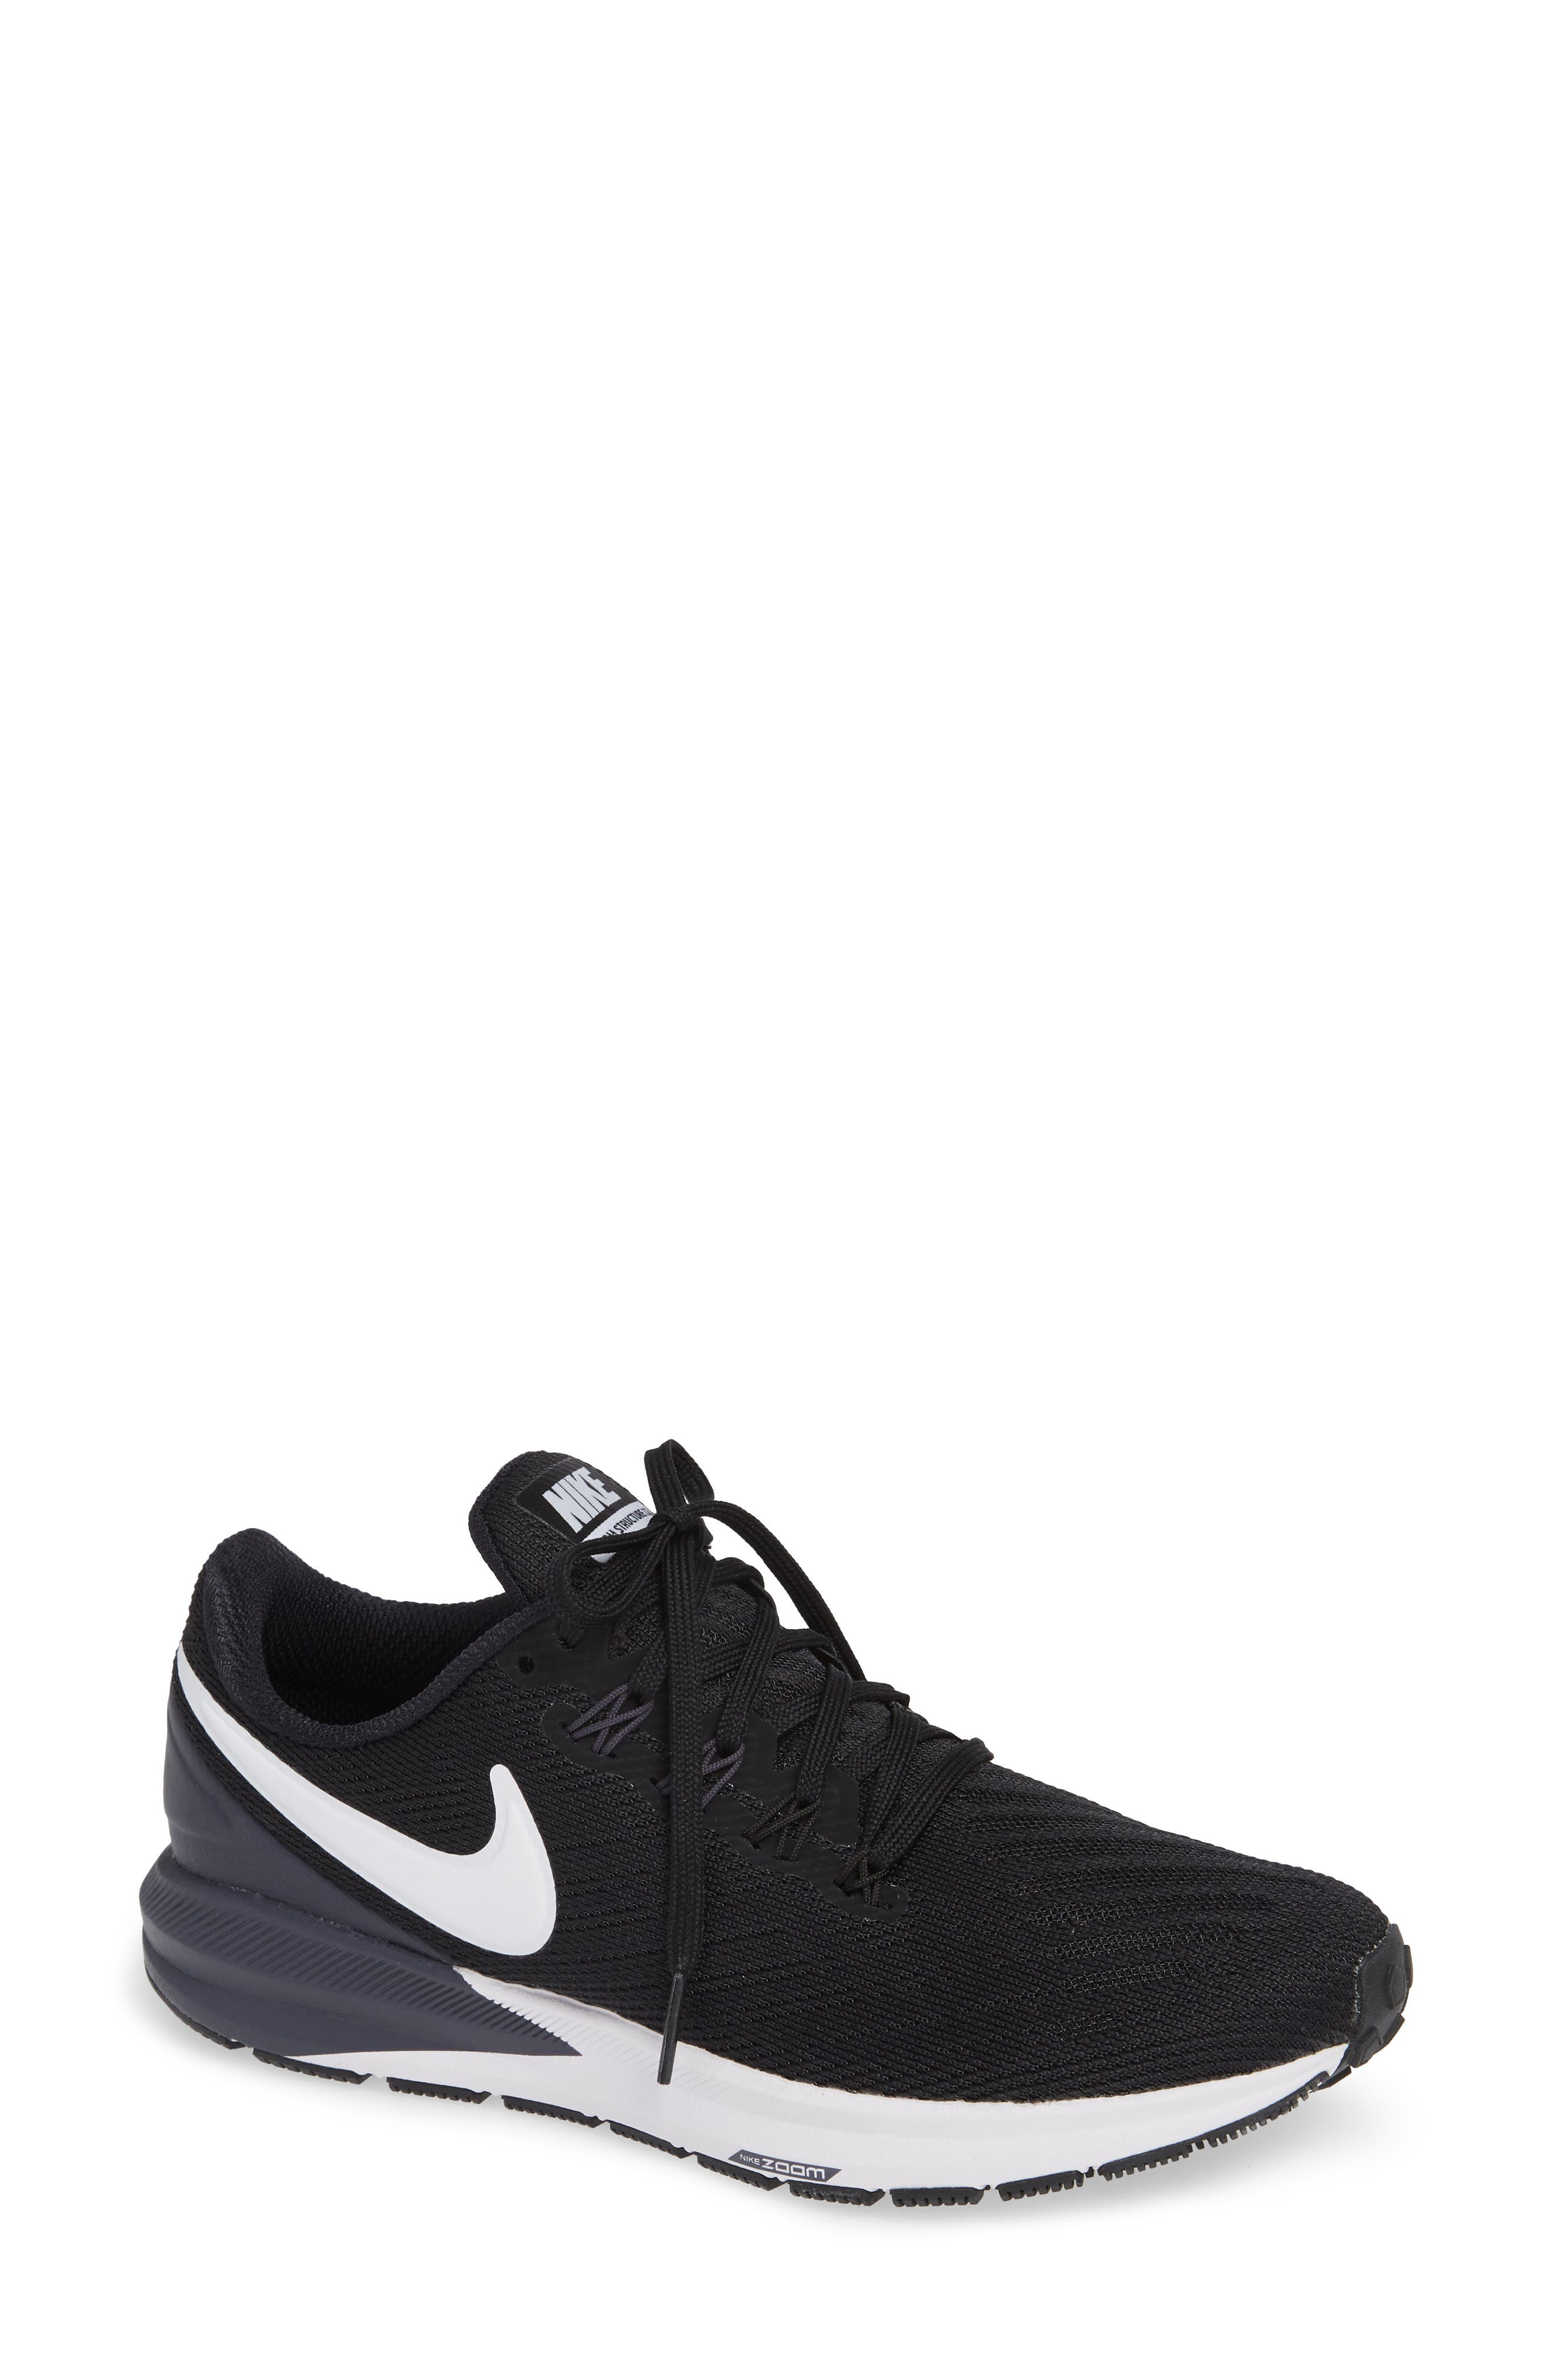 Air Zoom Structure 22 Sneaker,                         Main,                         color, BLACK/ WHITE-GRIDIRON